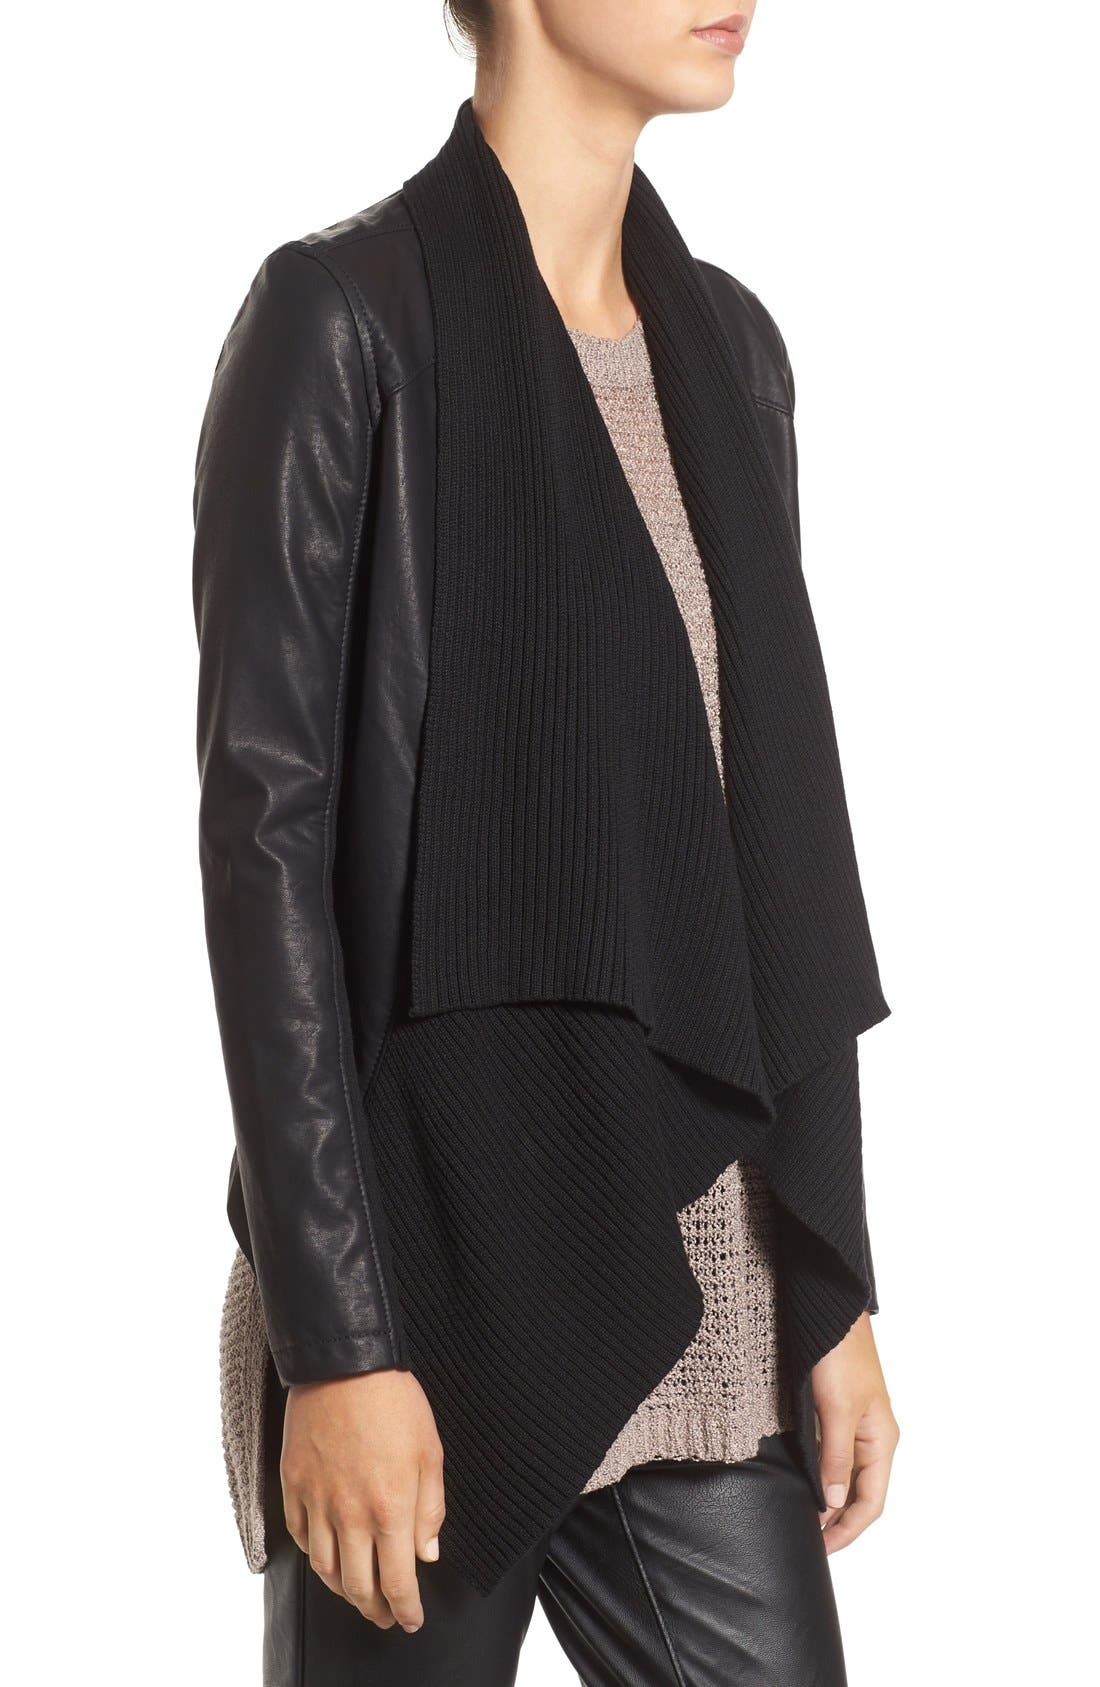 BLANKNYC, All or Nothing Faux Leather Jacket, Alternate thumbnail 4, color, 001